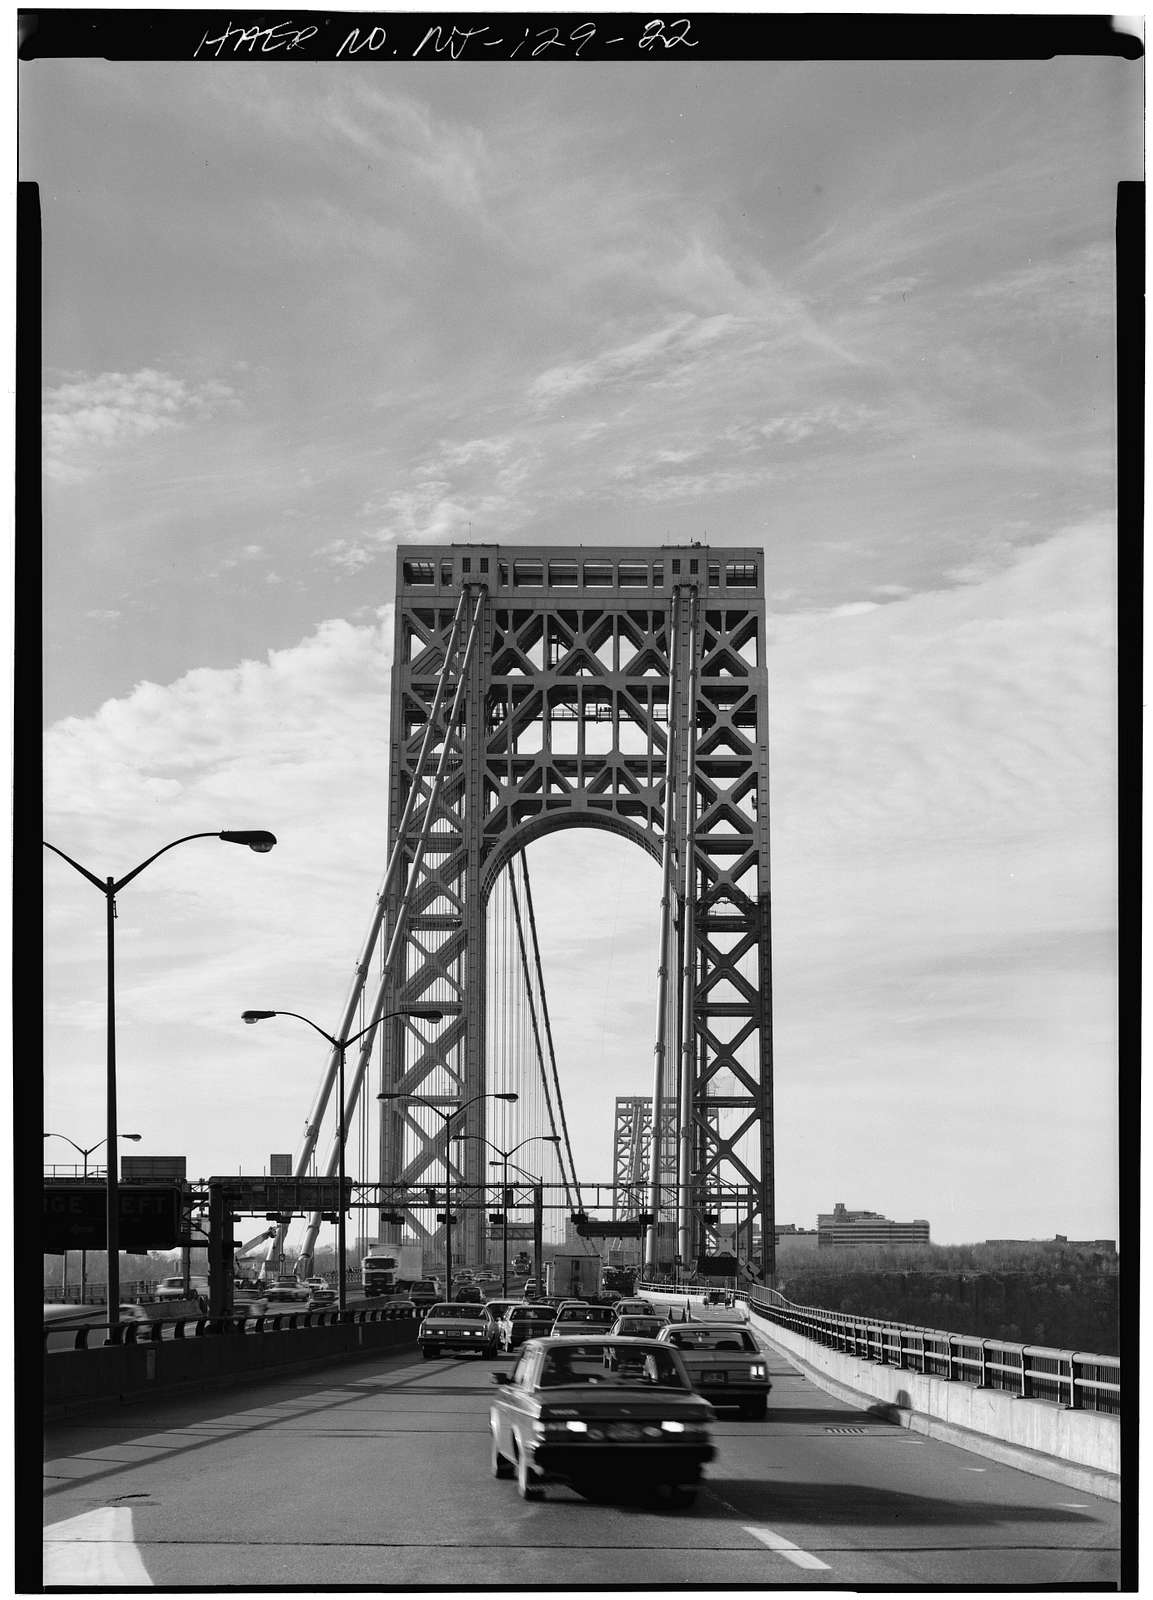 George Washington Bridge, Spanning Hudson River between Manhattan & Fort Lee, NJ, New York, New York County, NY